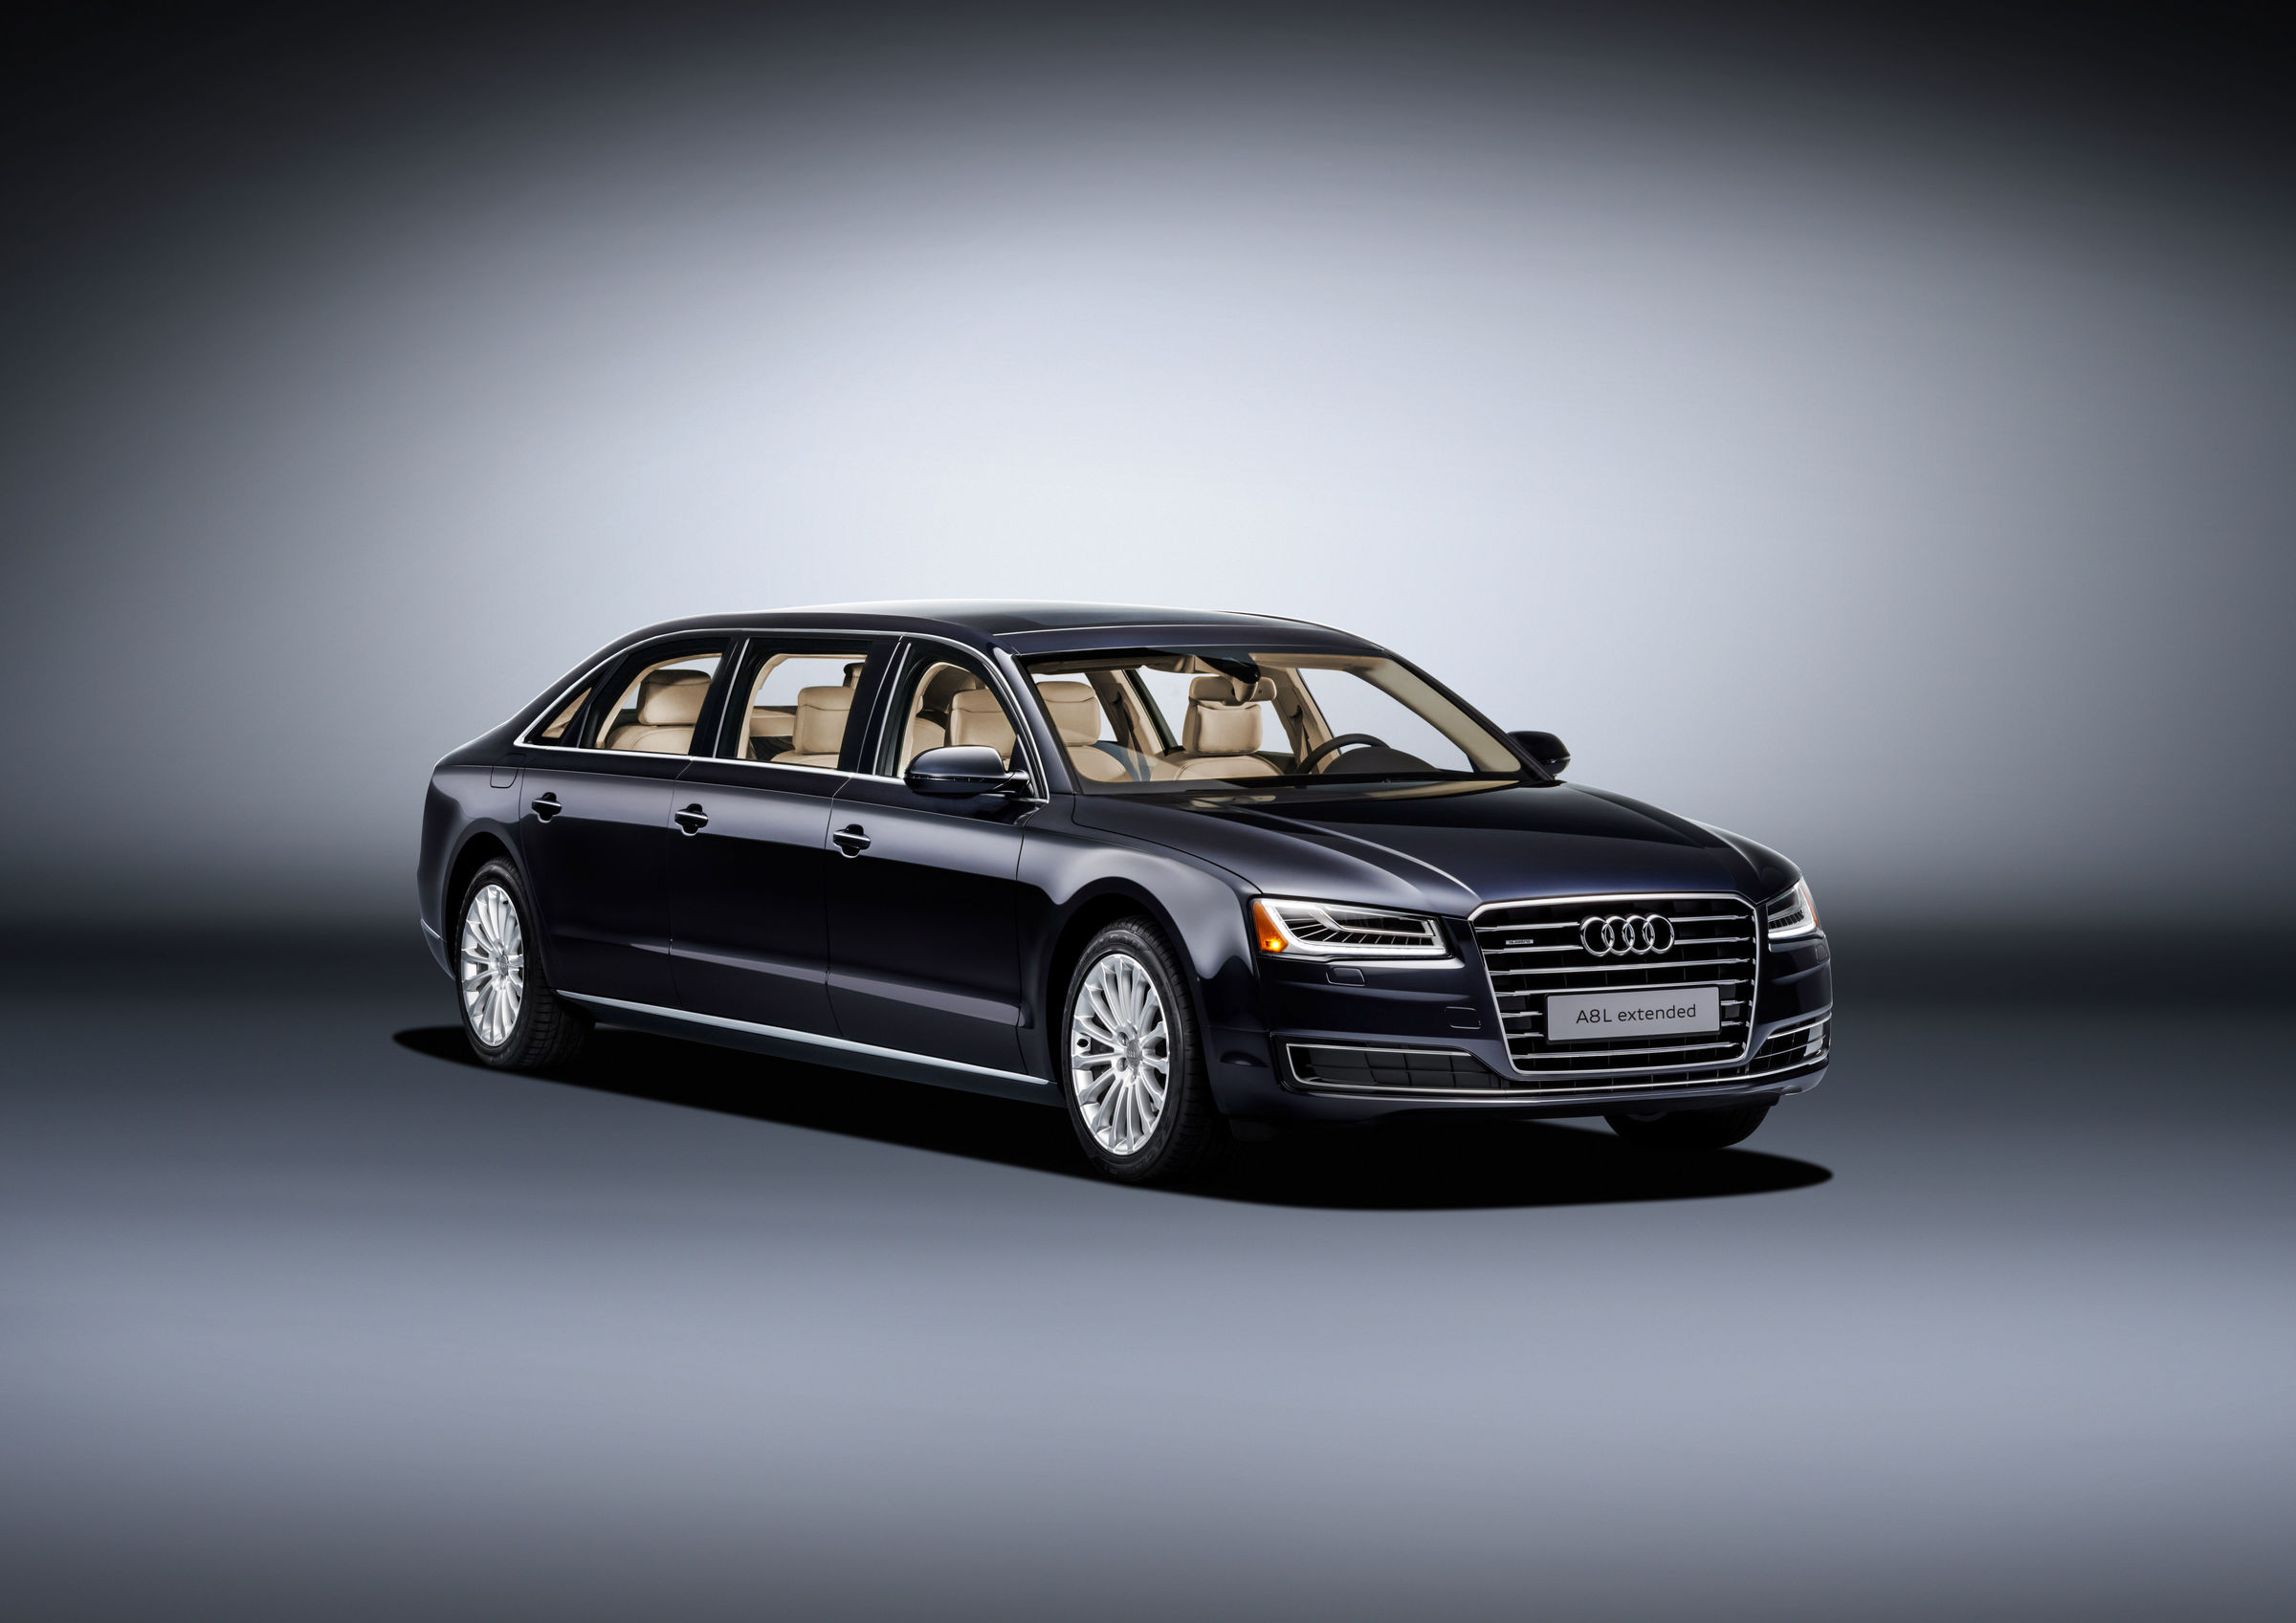 Audi A8 L Extended 2016